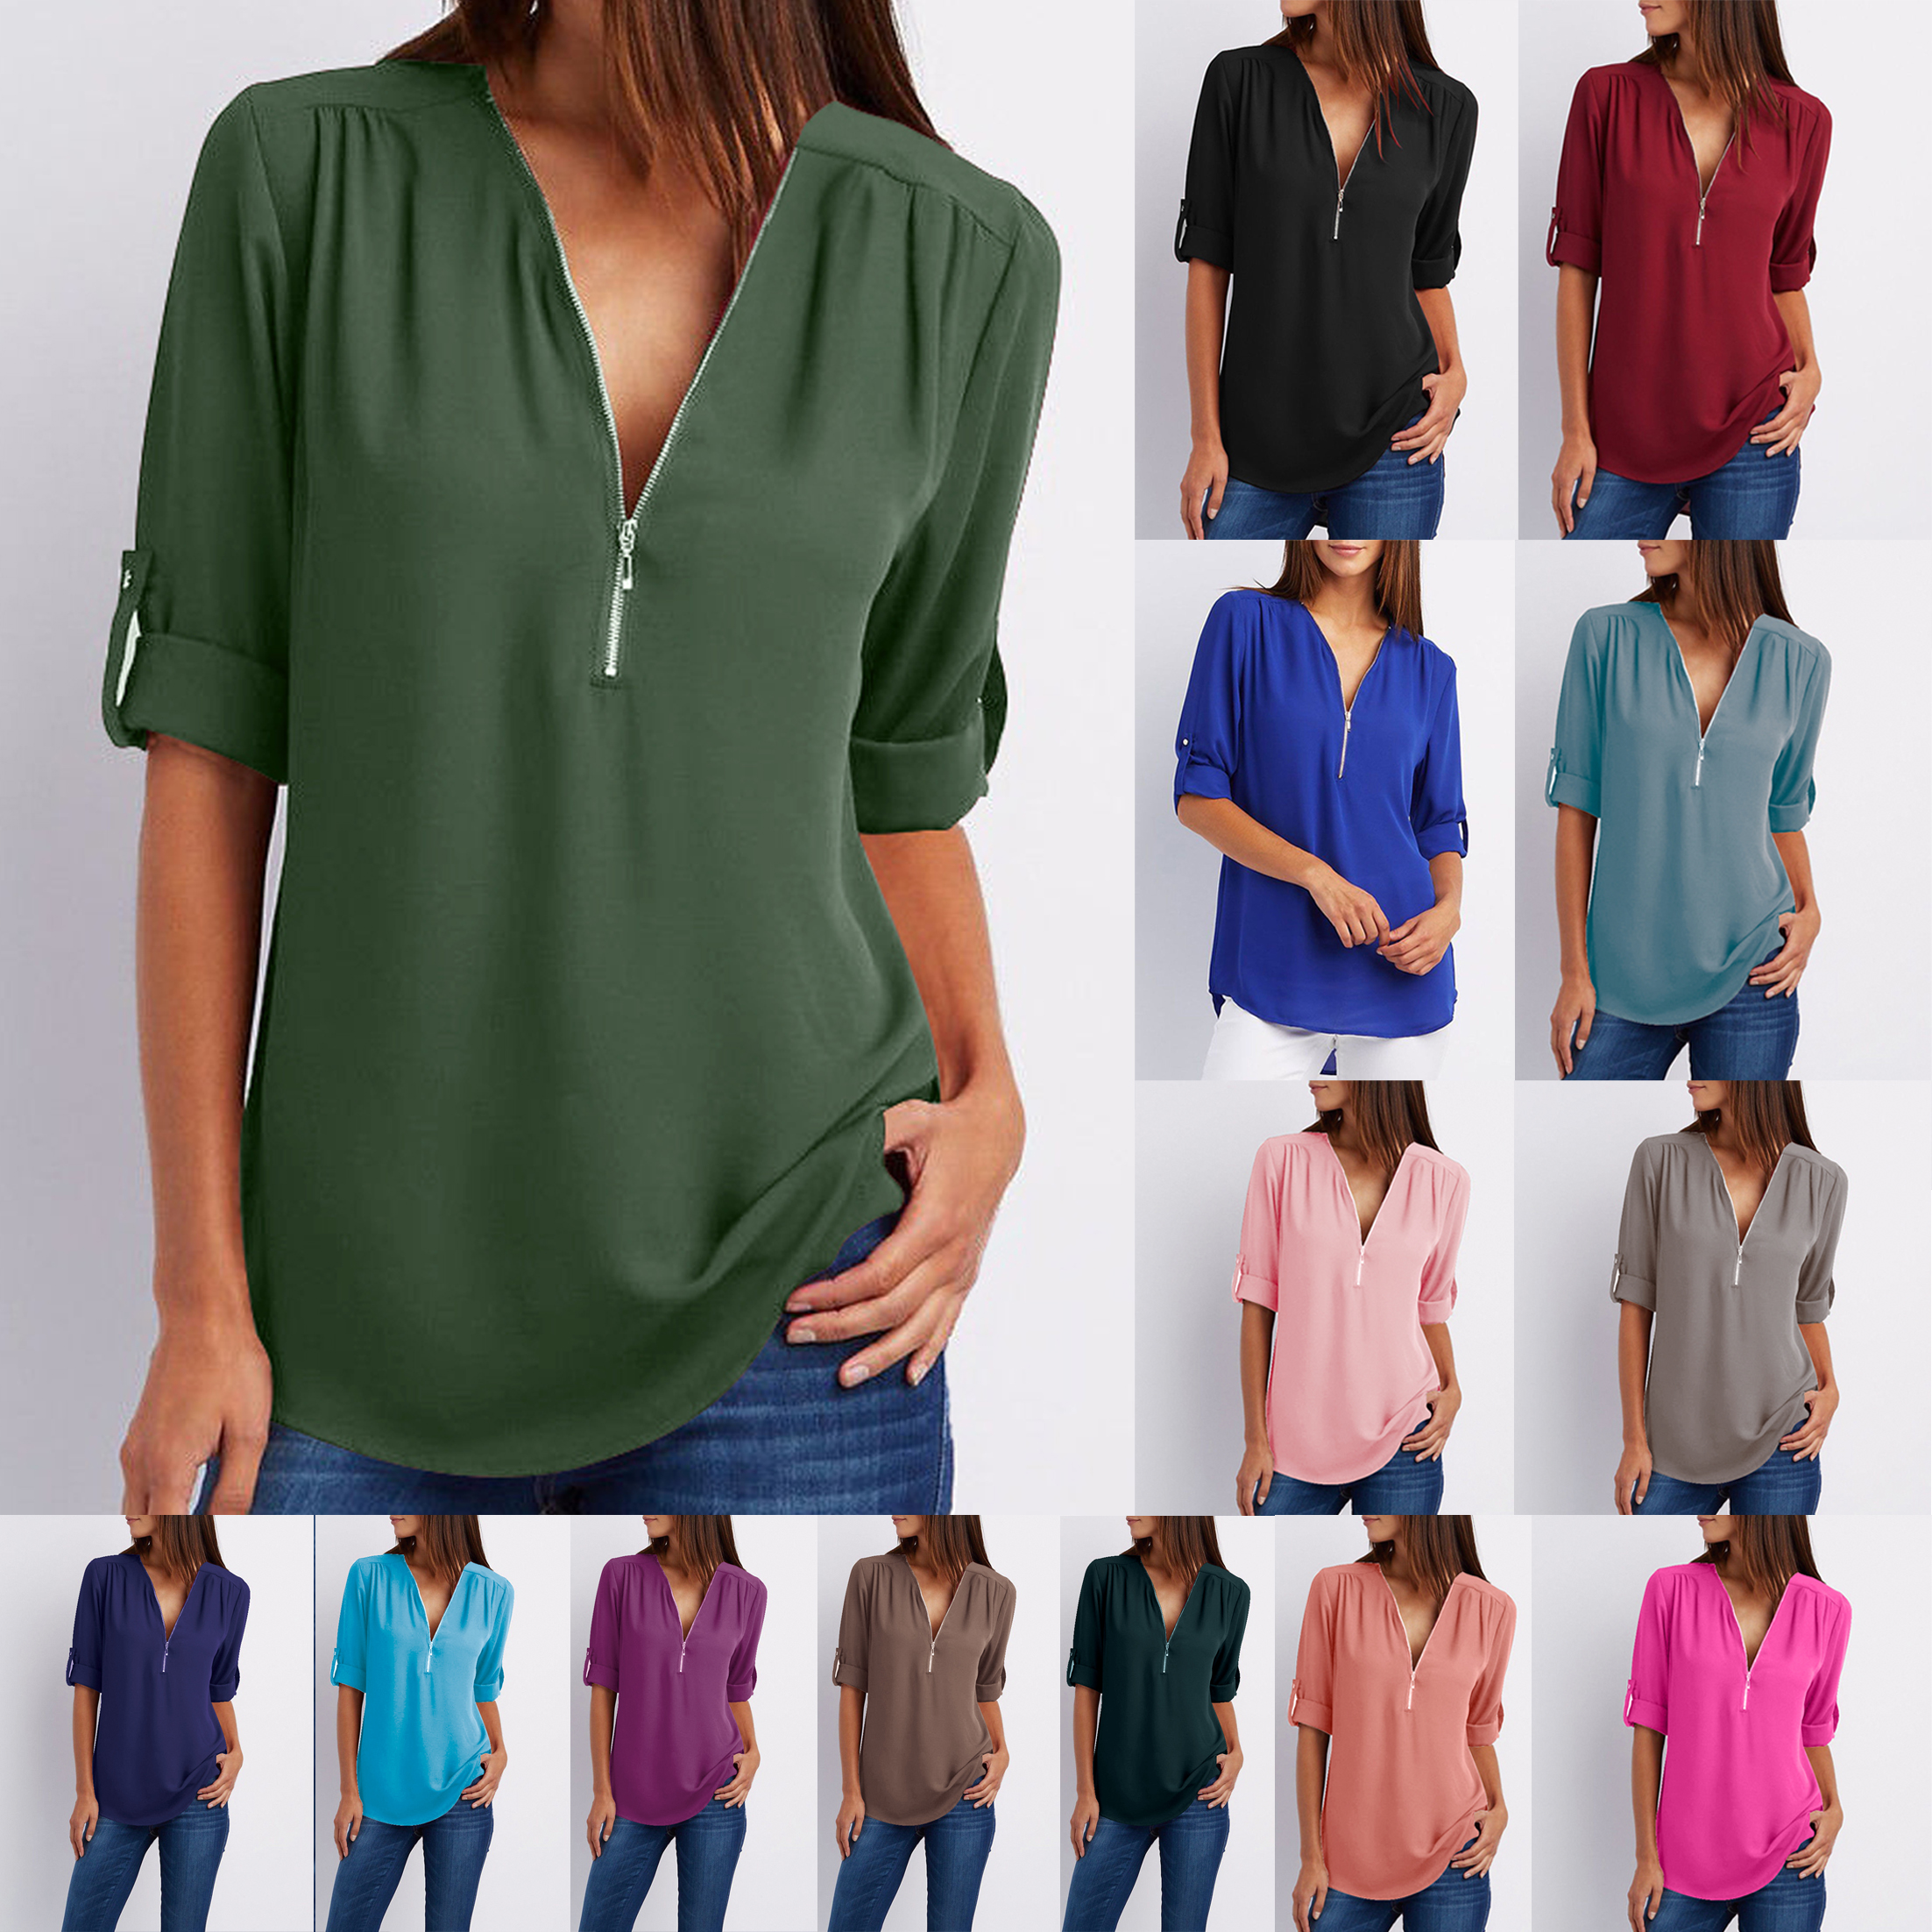 Summer Women Cool Loose Shirt <font><b>Deep</b></font> <font><b>V</b></font> Neck Chiffon <font><b>Blouse</b></font> Casual Ladies Tops <font><b>Sexy</b></font> Zipper Pullover Plus Size Long Sleeve Fashion image